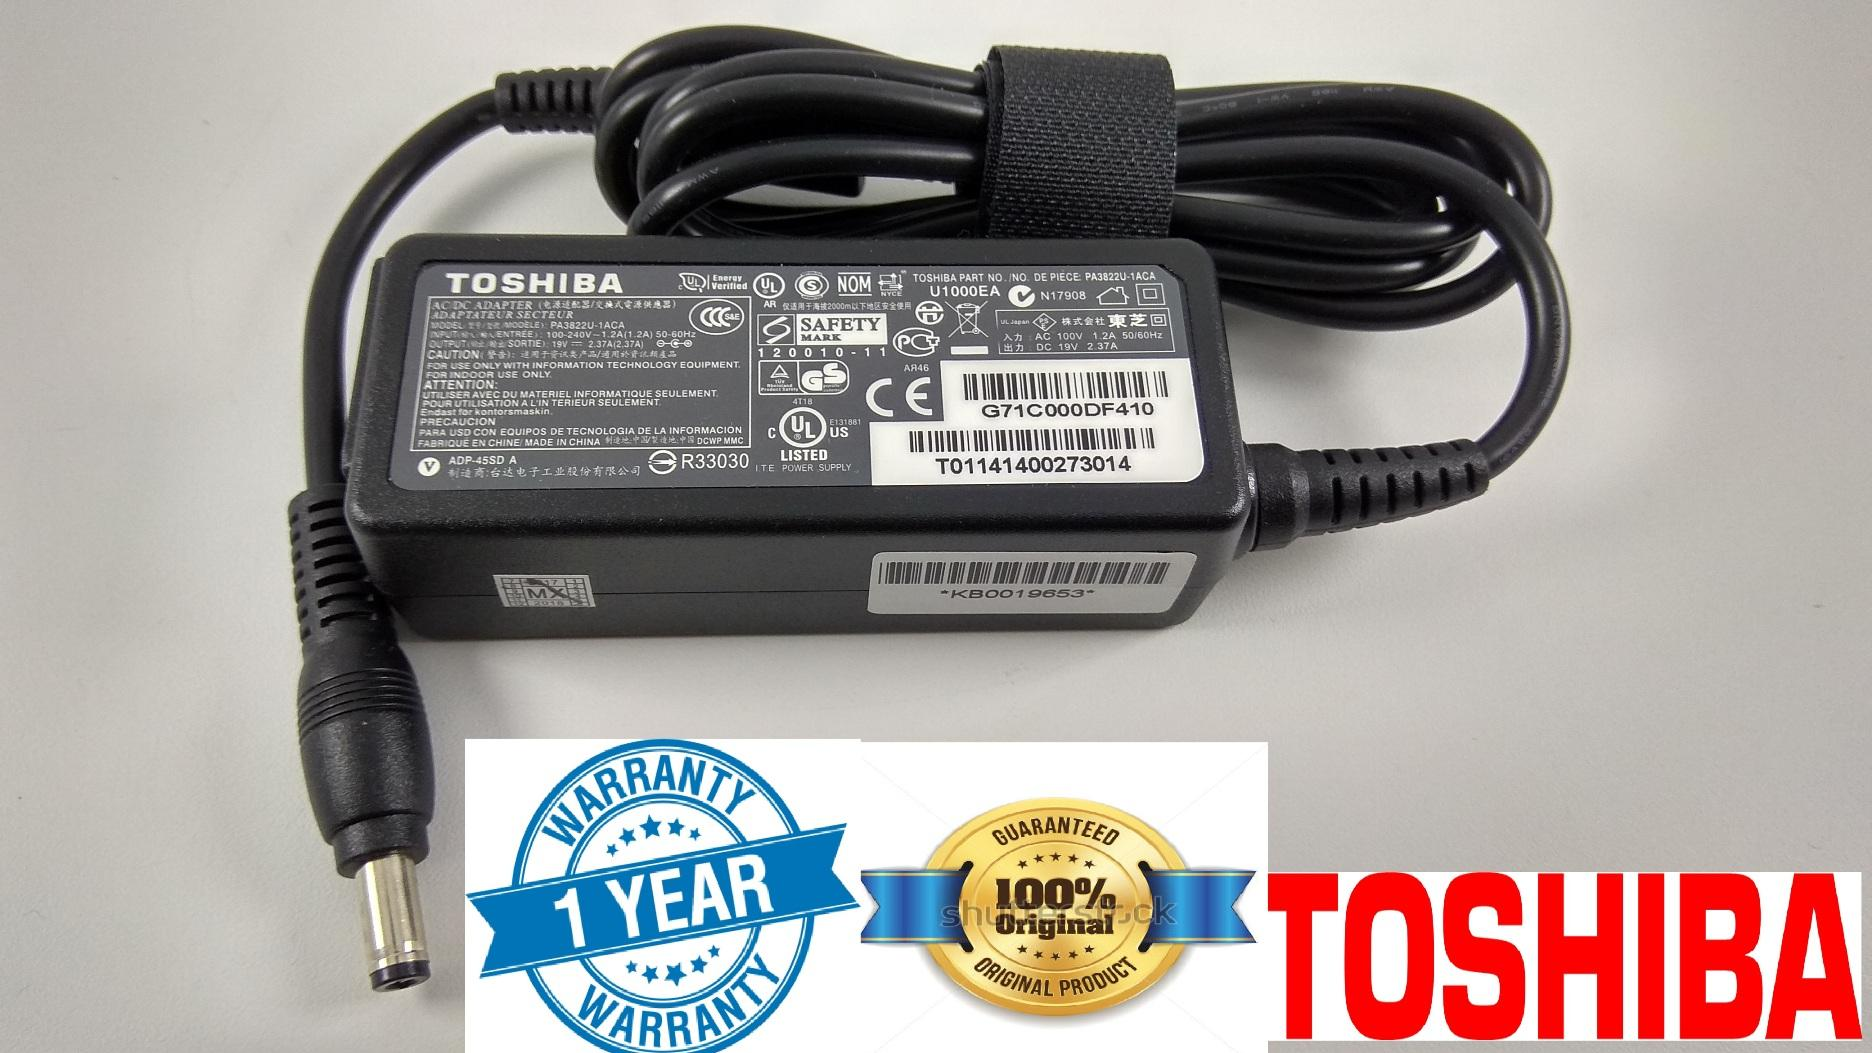 Toshiba Laptop Original Adapter Charger 19V 2.37A ( 45W ) 5.5 * 2.5 mm C660D-185 Toshiba Satellite Pro C660D-187 Toshiba Satellite Pro C660D-1CD Toshiba Satellite Pro C660D-1CE Toshiba Satellite Pro C660D-1D9 Toshiba Satellite SPECIAL